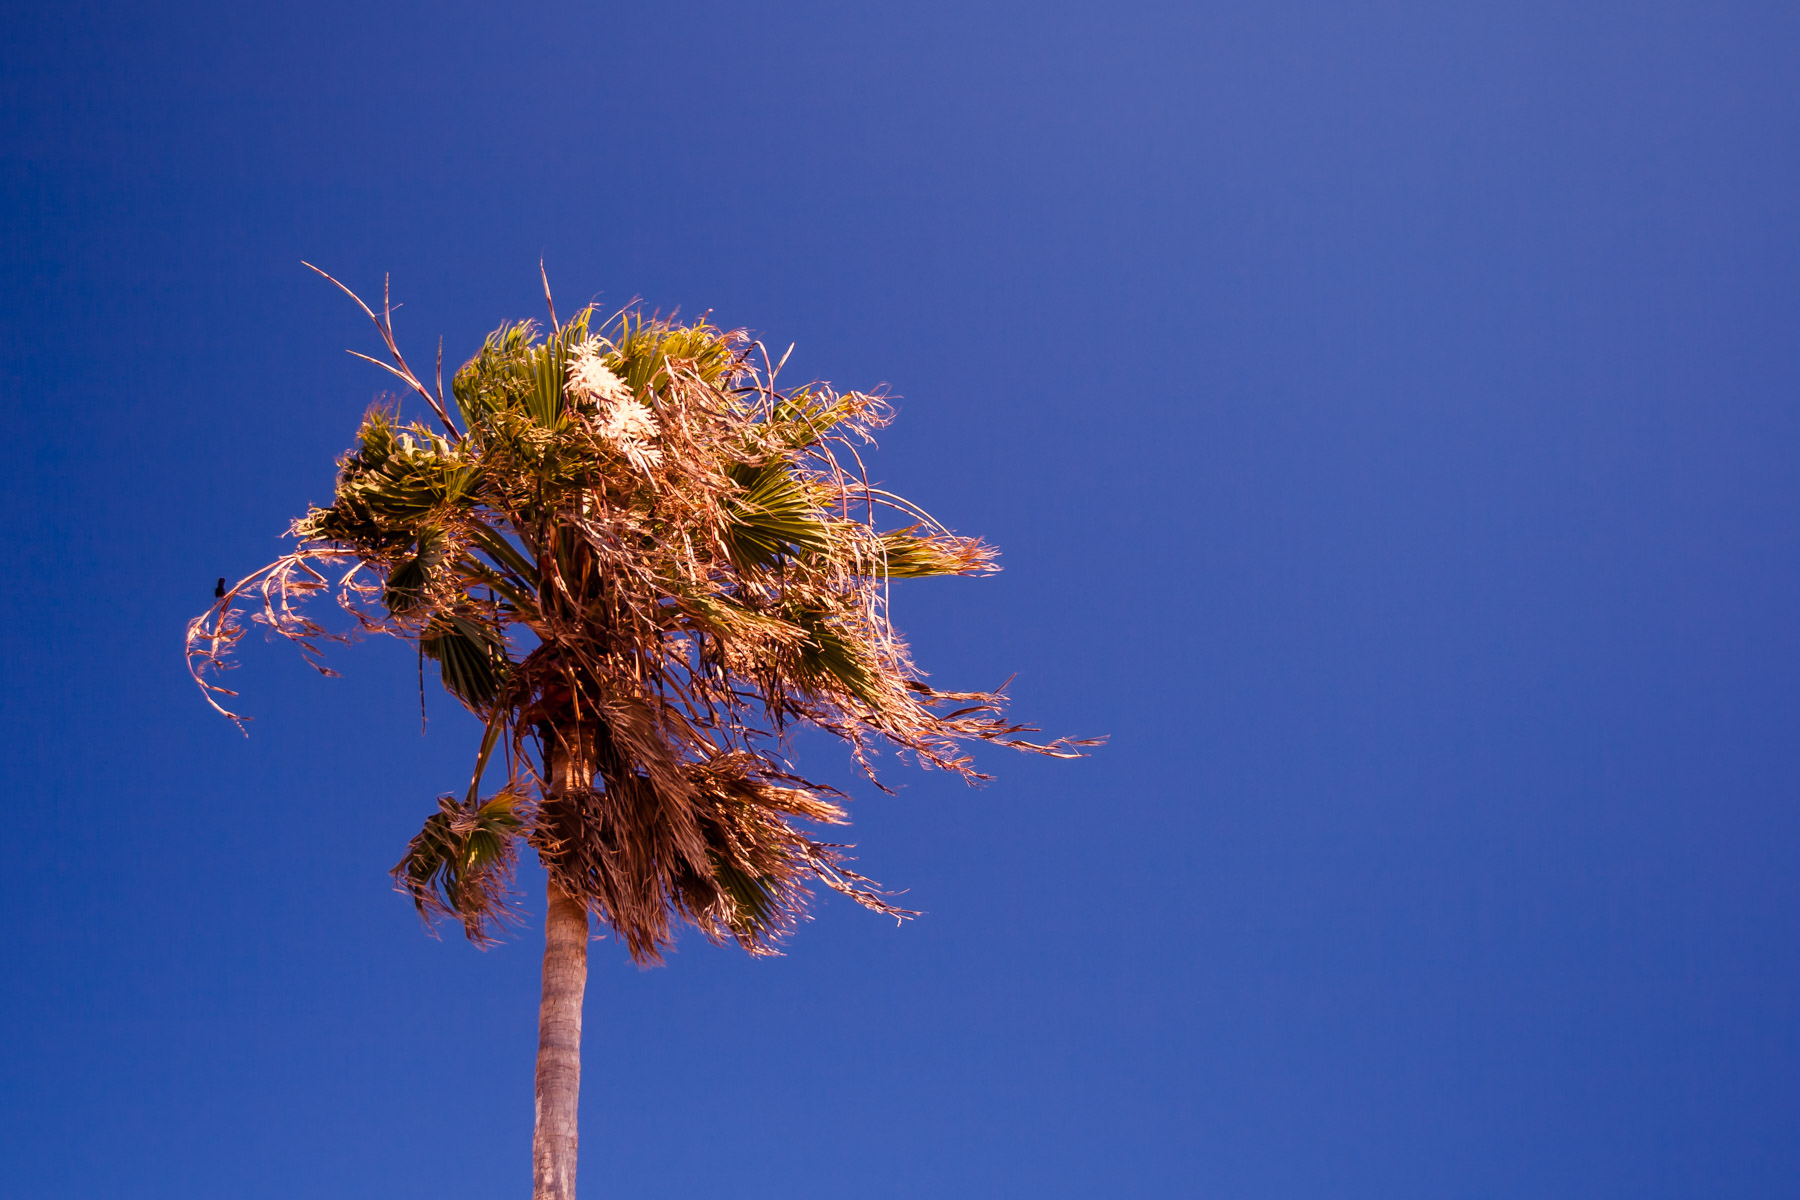 A lone, windswept palm tree in South Padre Island, Texas.